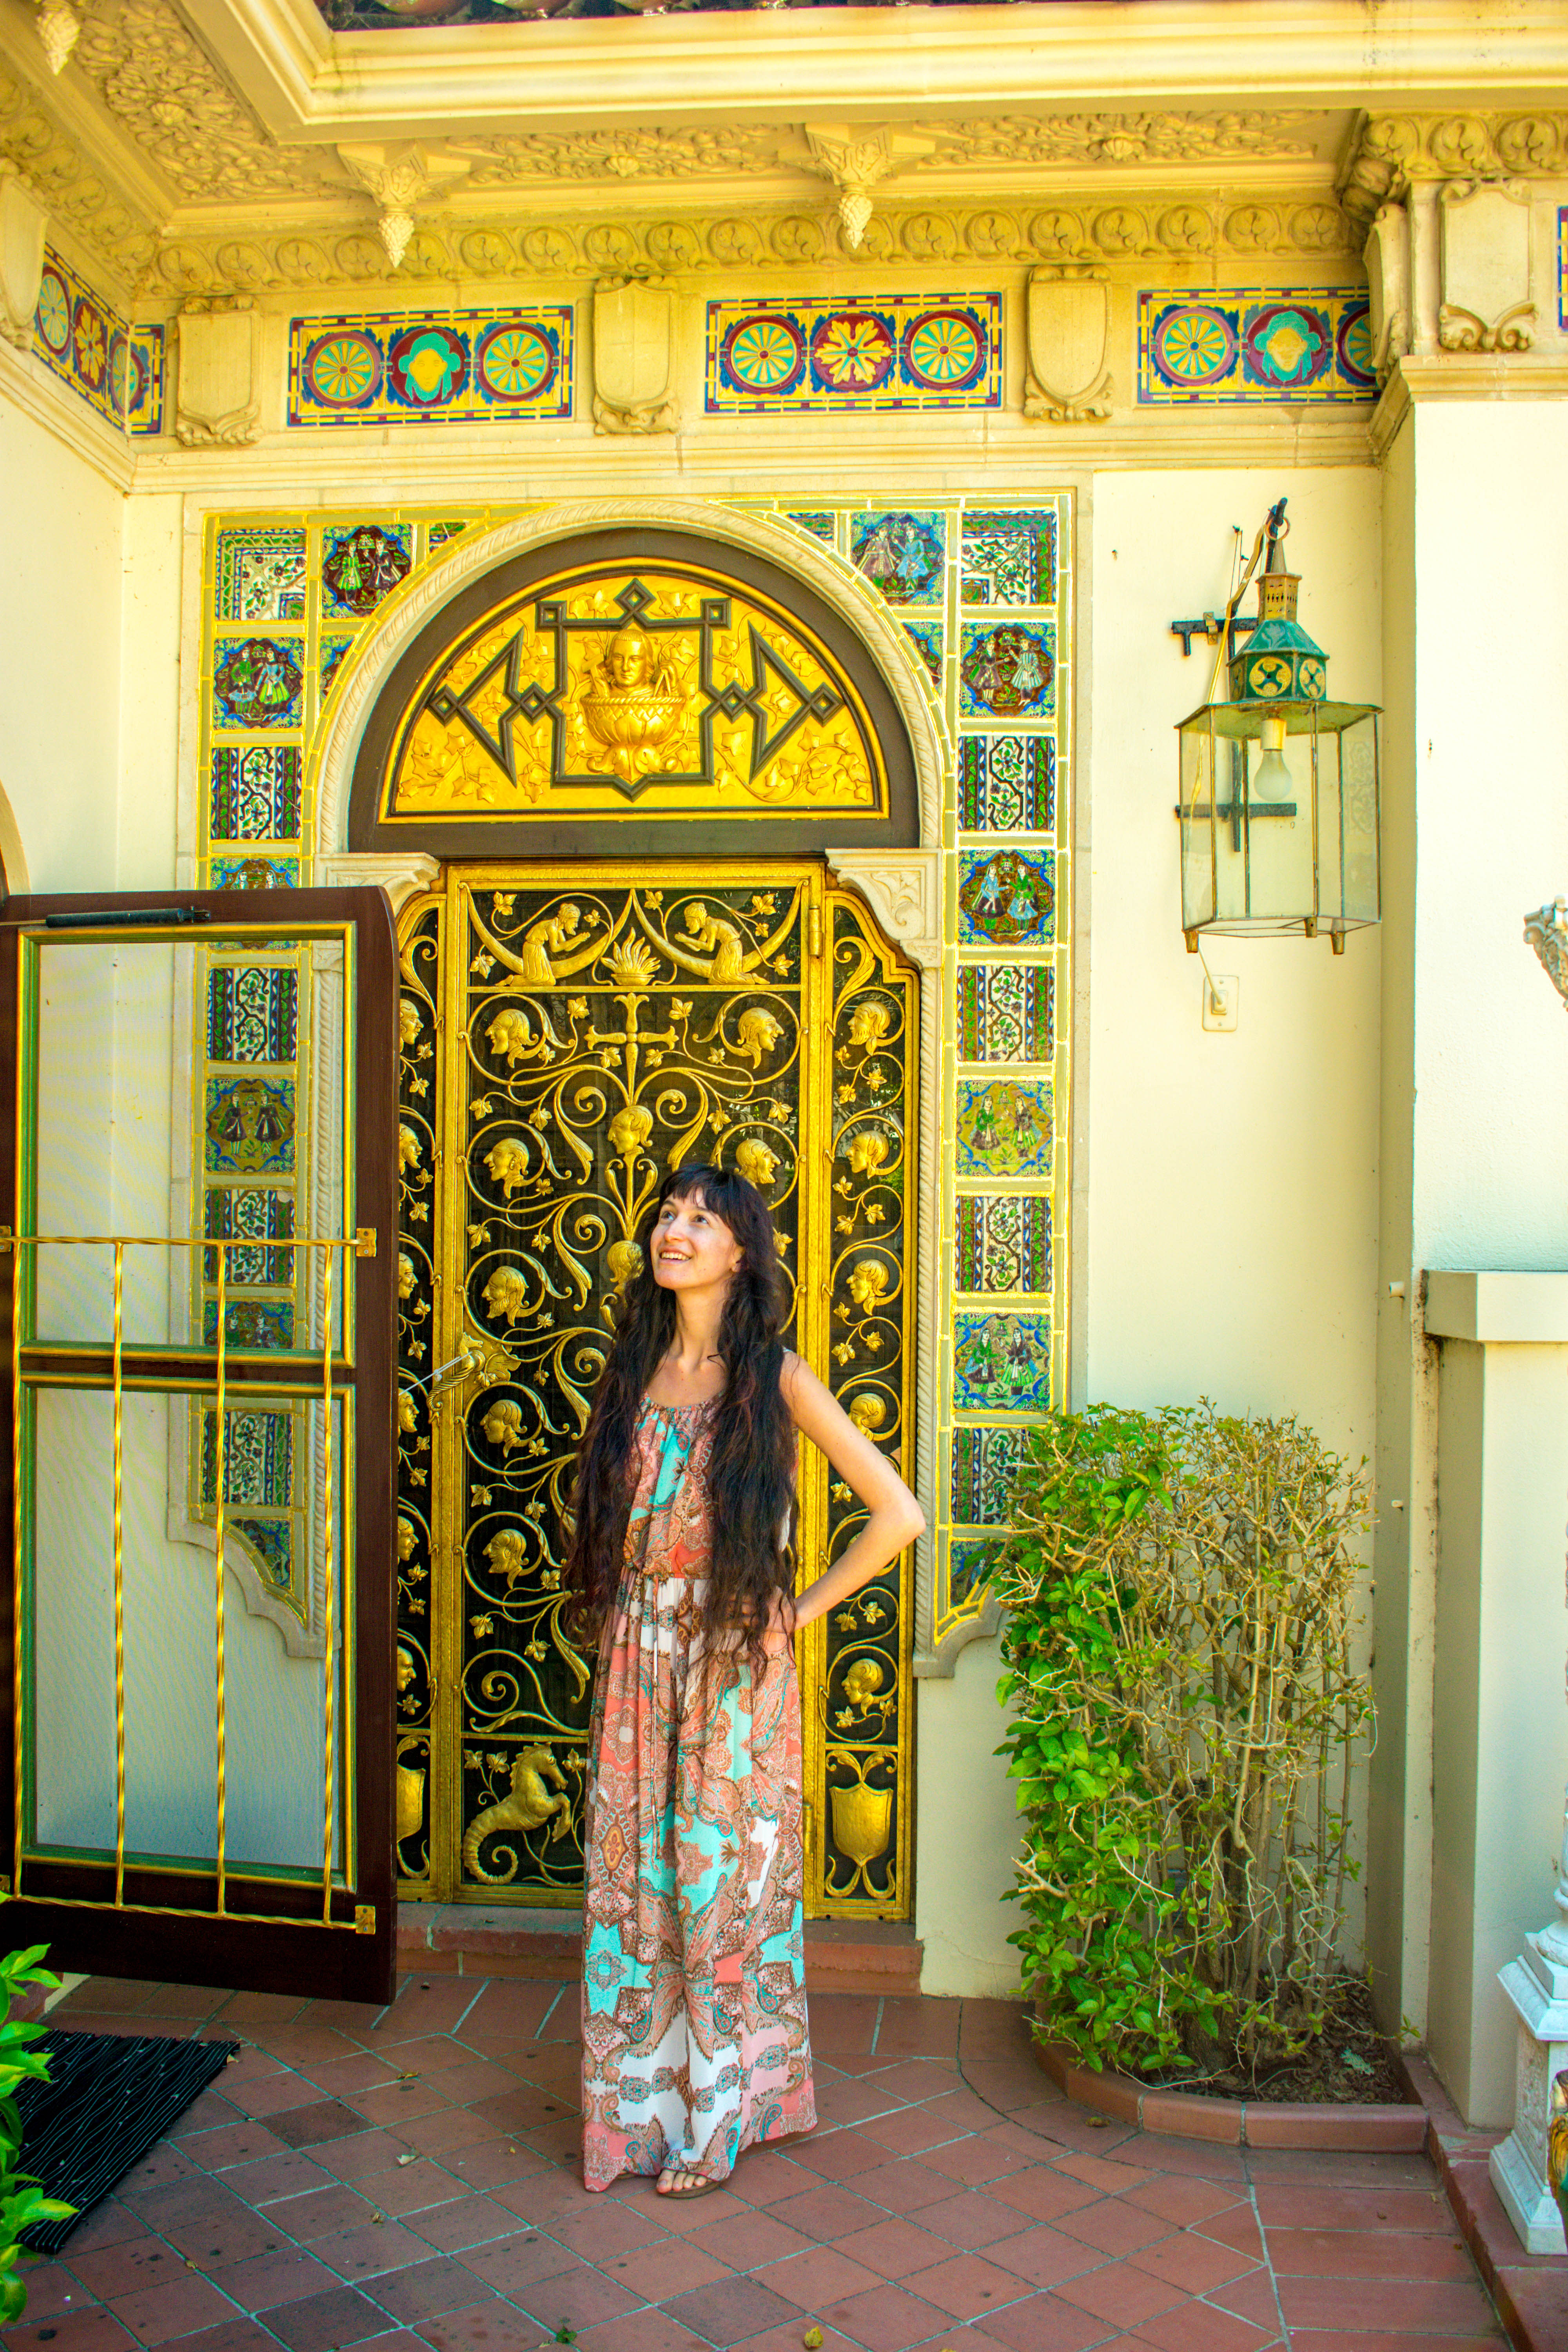 solvang, santa barabara, highway 101, highway 1, pacific coast highway, birthday, road trip, architecture, must see, places to stop, Hearst, castle, California, state park, historic, site, monument, San Simeon